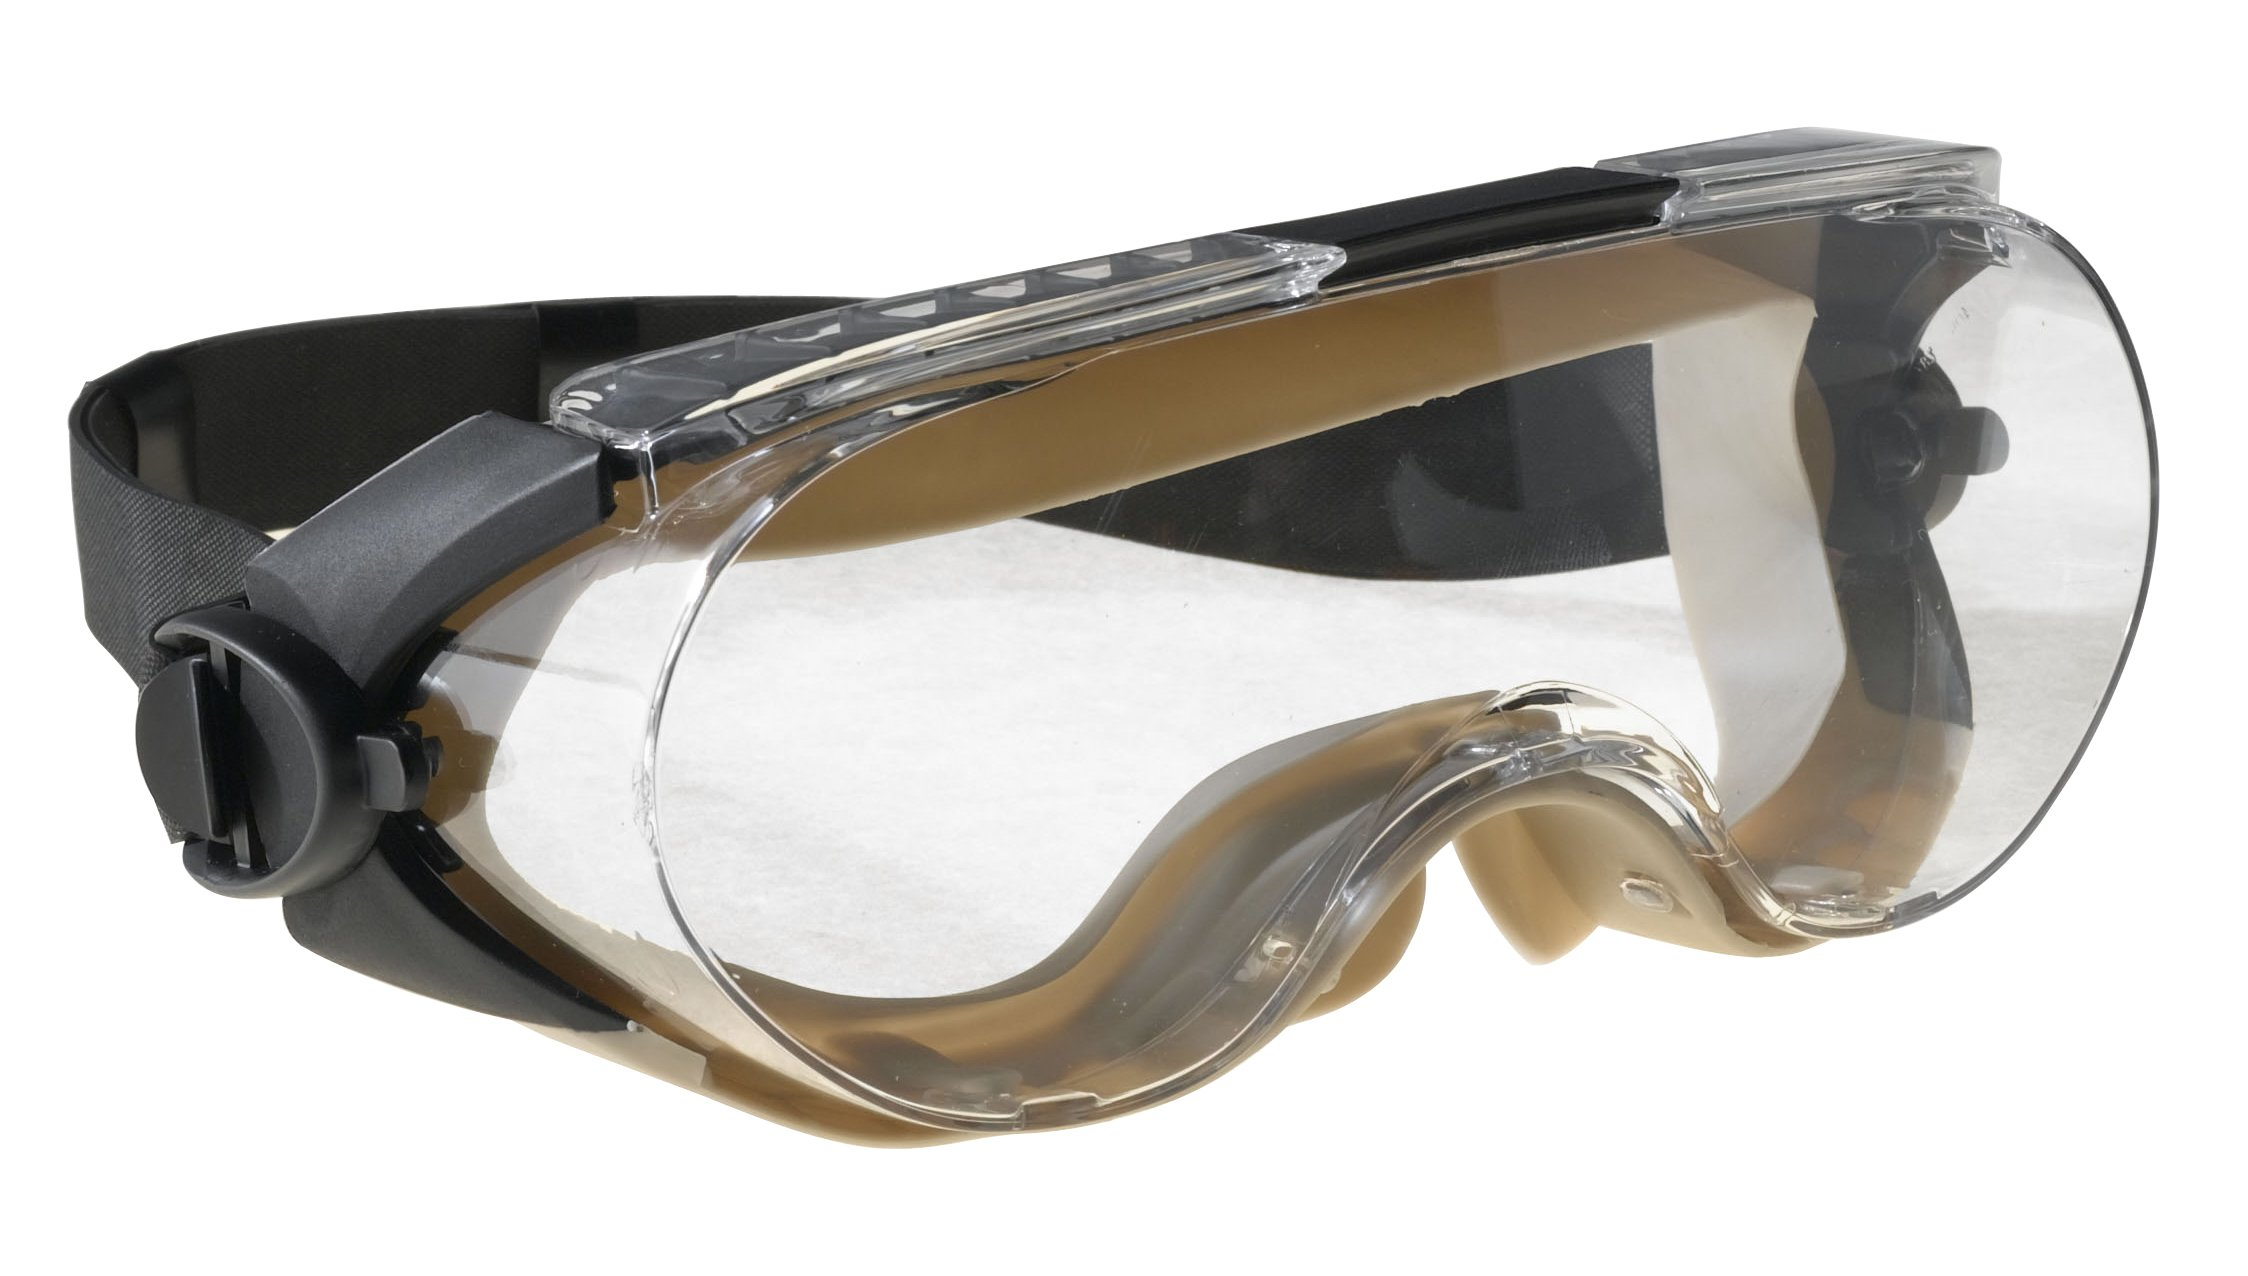 3M Maxim Safety Splash Goggle, 40671-00000-10 Over-the-Glass, Clear Anti-Fog Lens  (Pack of 1) by 3M Personal Protective Equipment (Image #2)